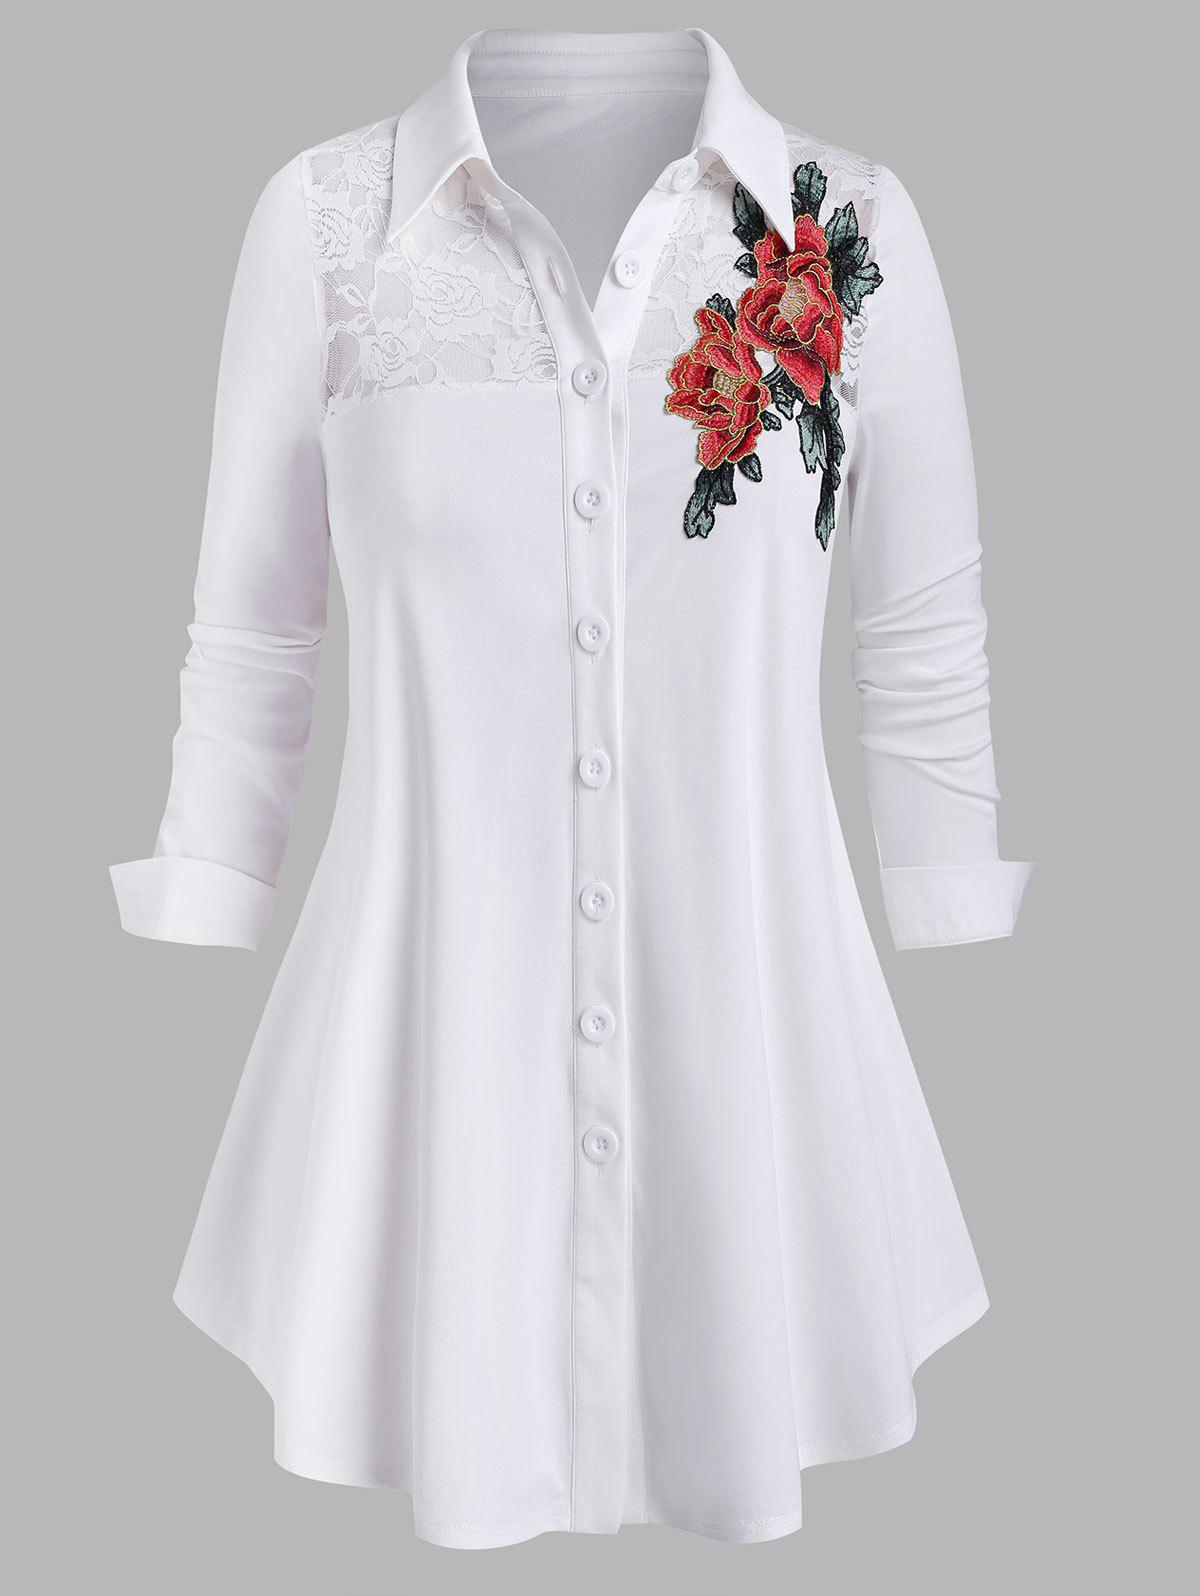 Plus Size Lace Sheer Yoke Flower Applique Shirt - WHITE 5X